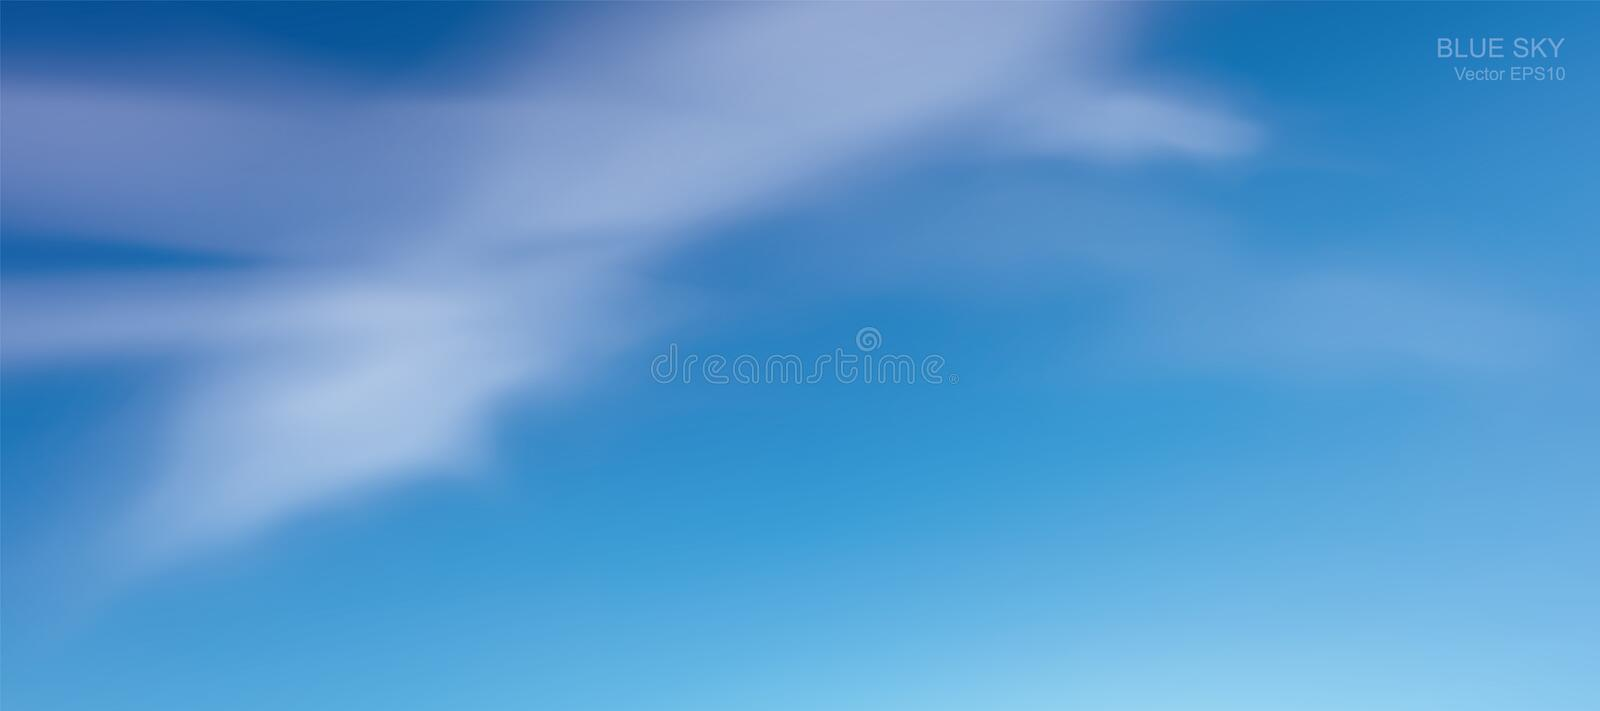 Blue sky background with white clouds. Abstract sky for natural background. vector illustration